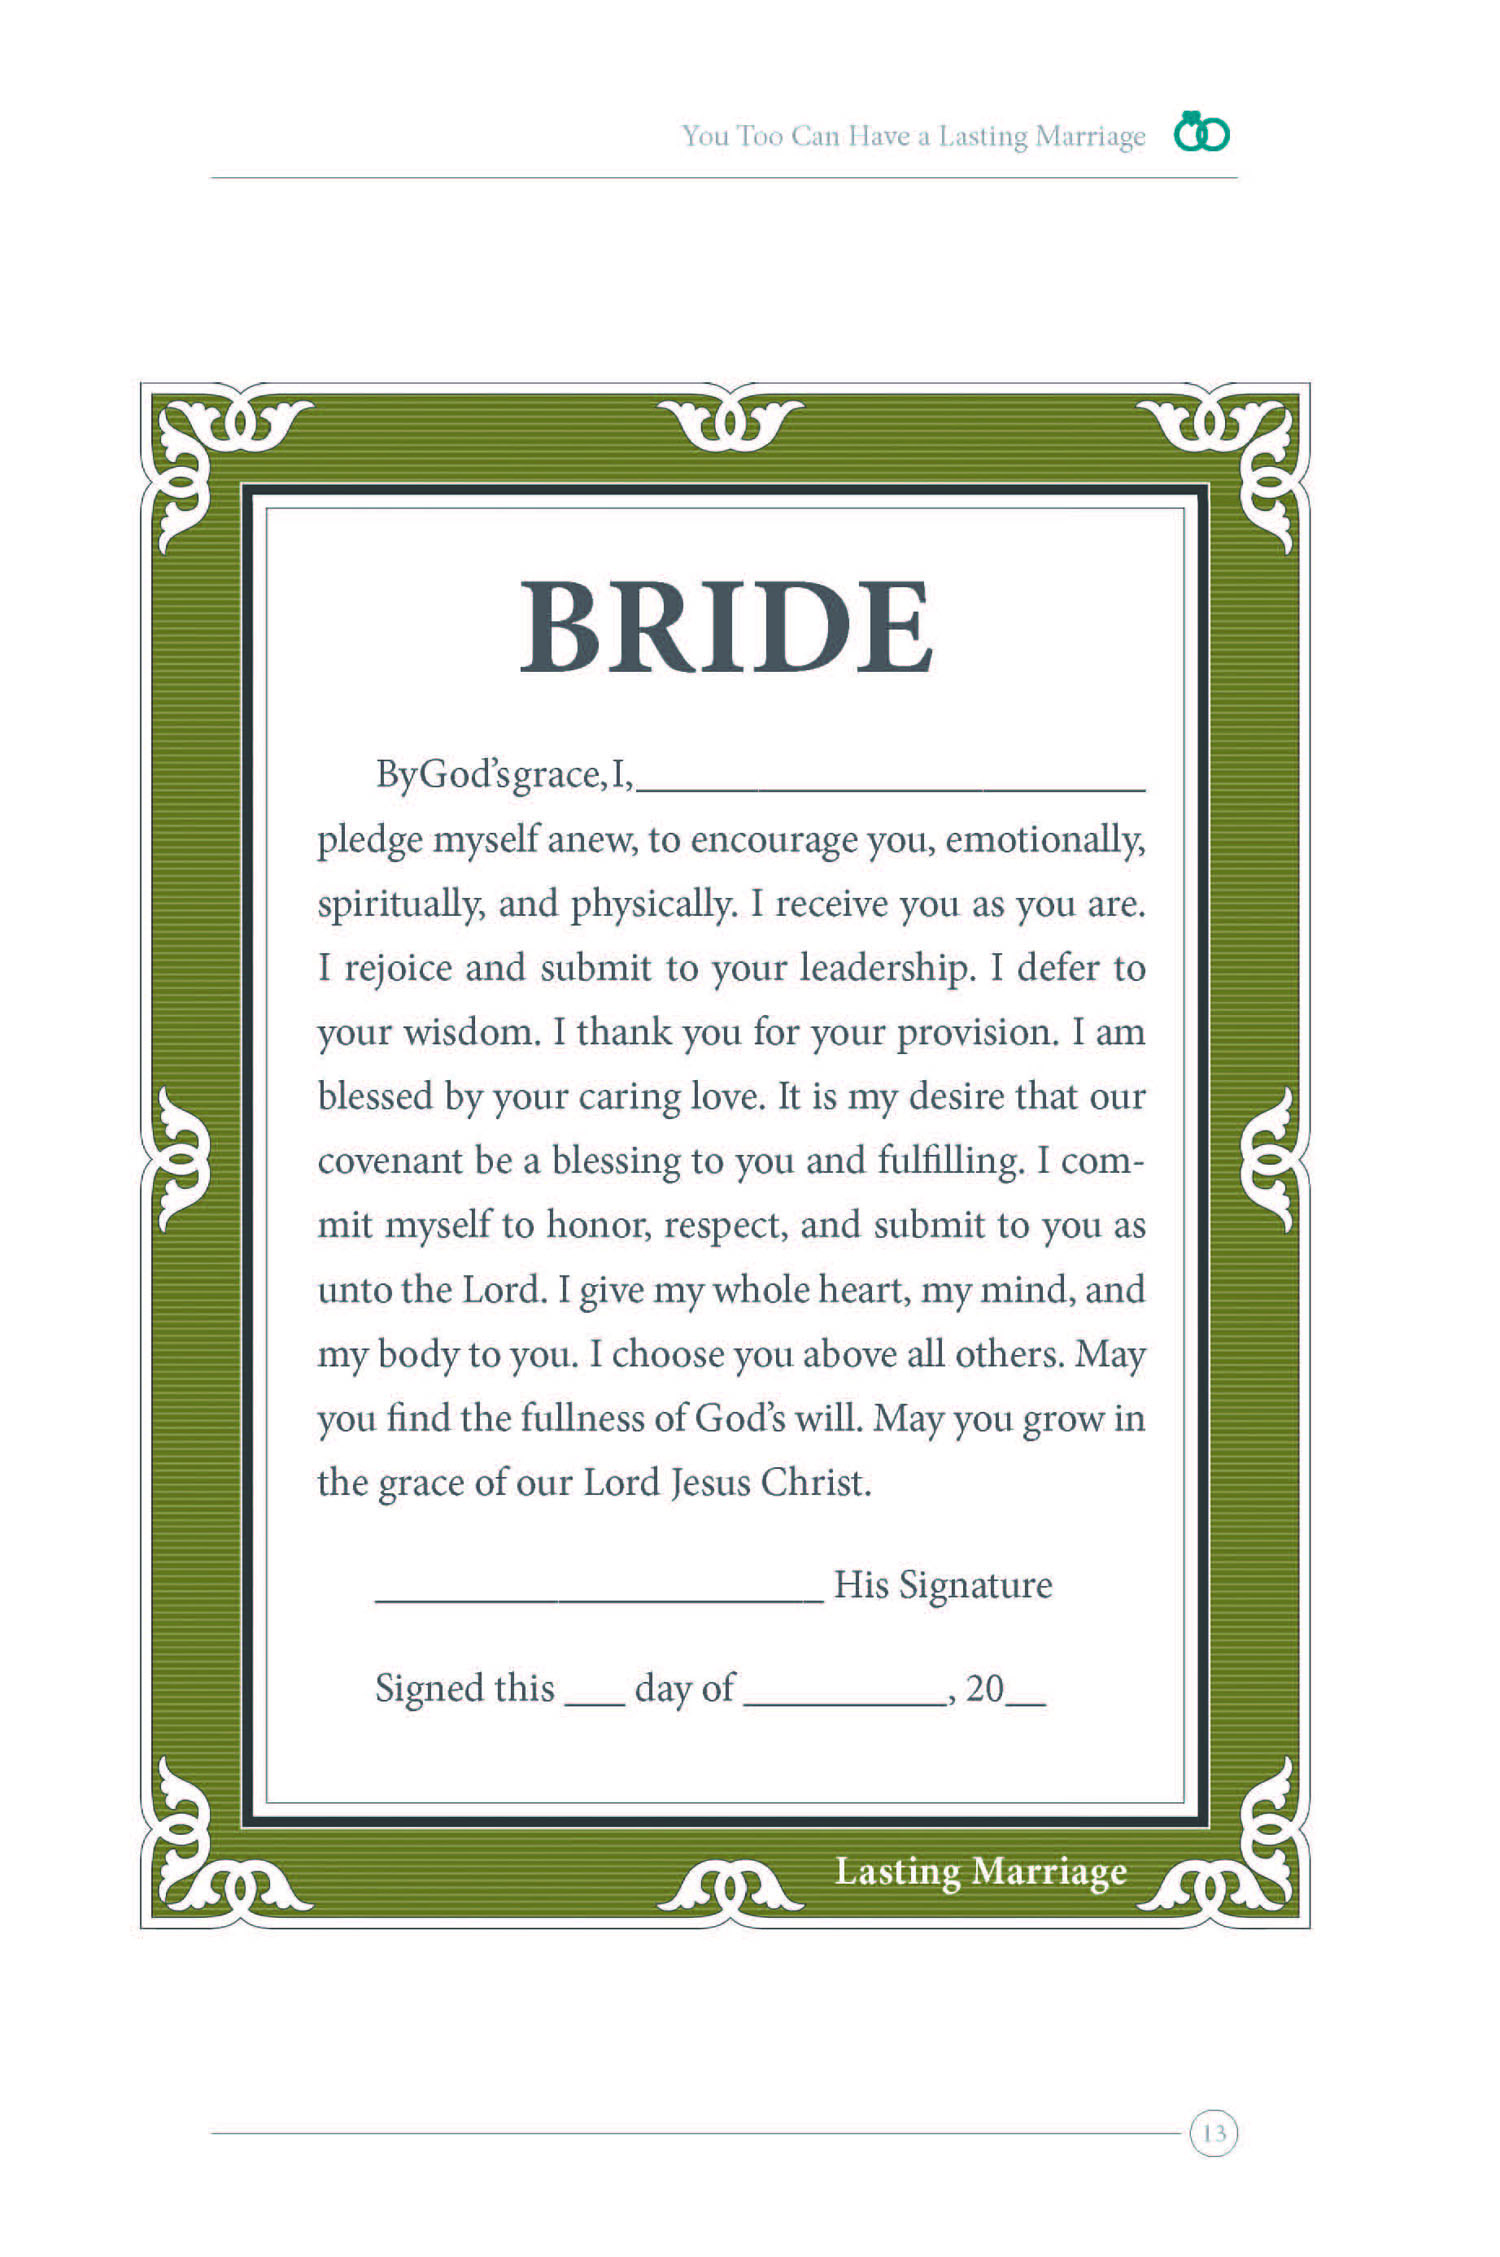 print_last_marriage_Page_013